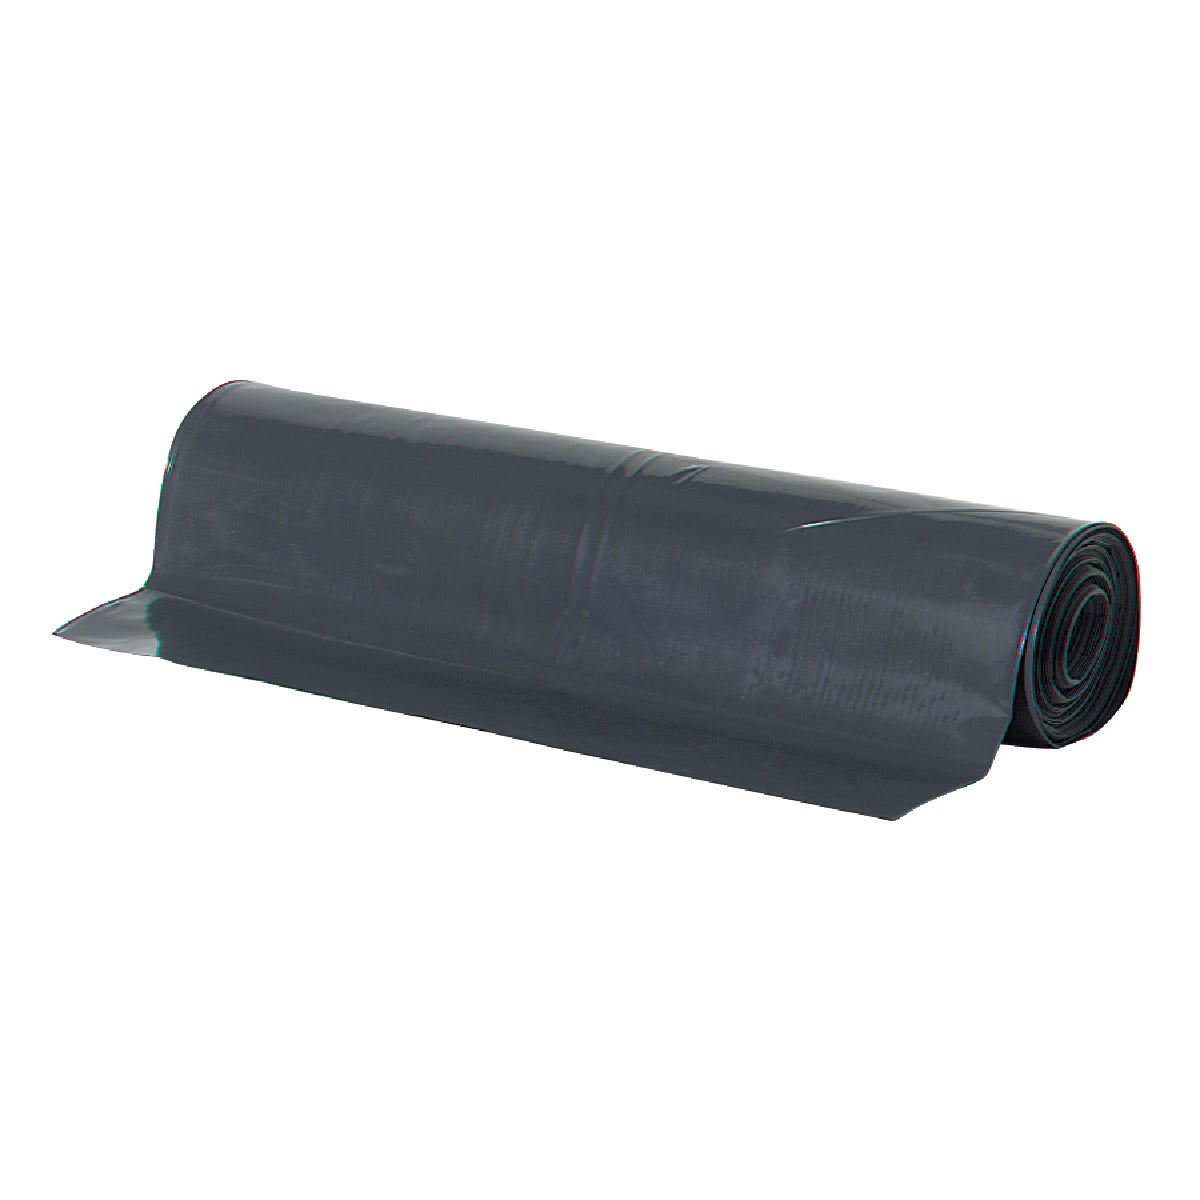 10X100 6M BLK POLY FILM - 626031 by Berry Plastics